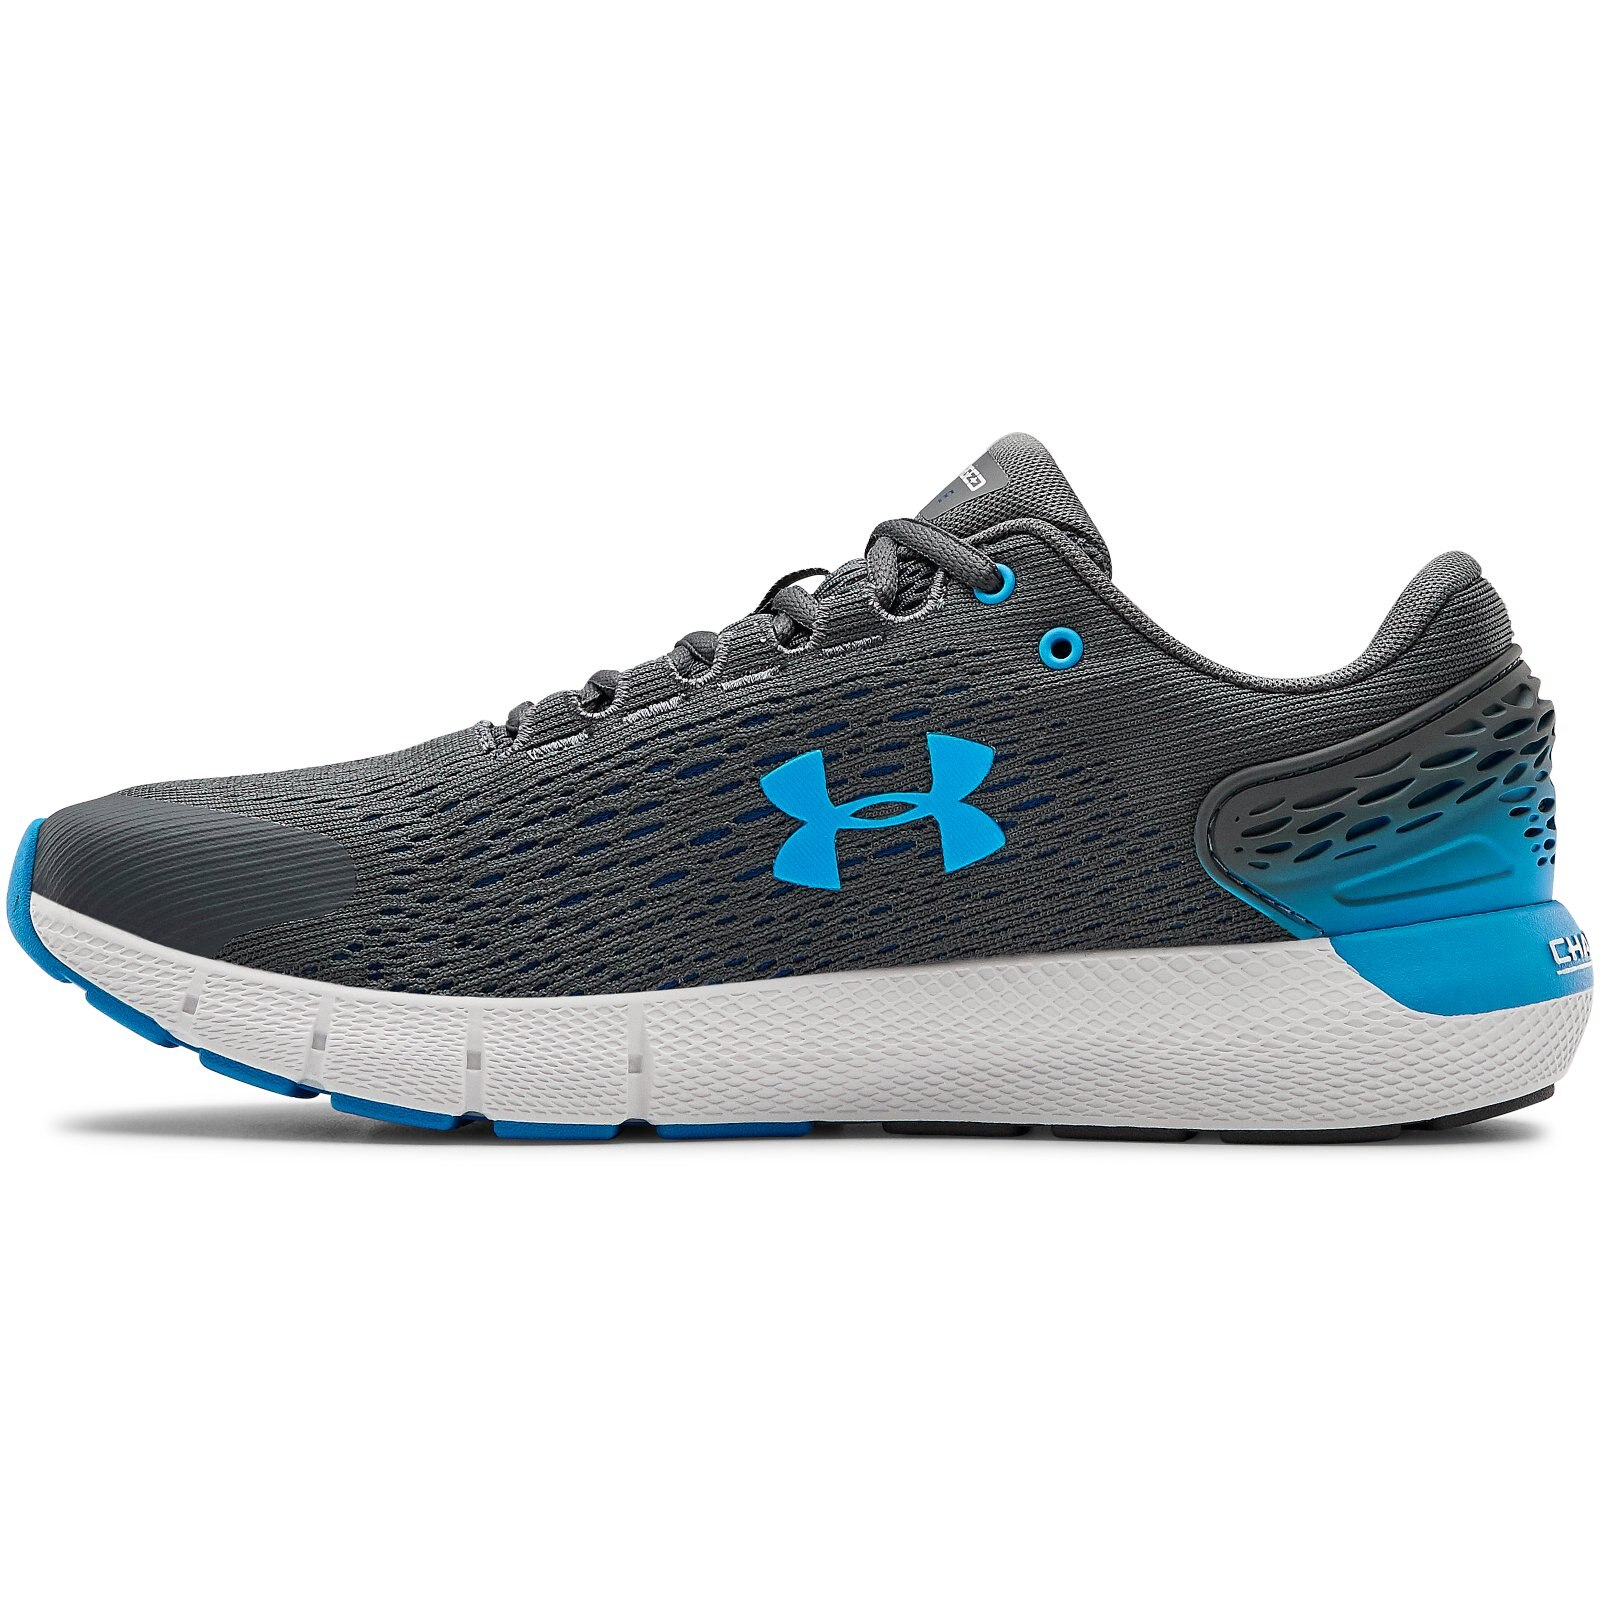 Кроссовки Charged Rogue 2 Under Armour Серый фото 2